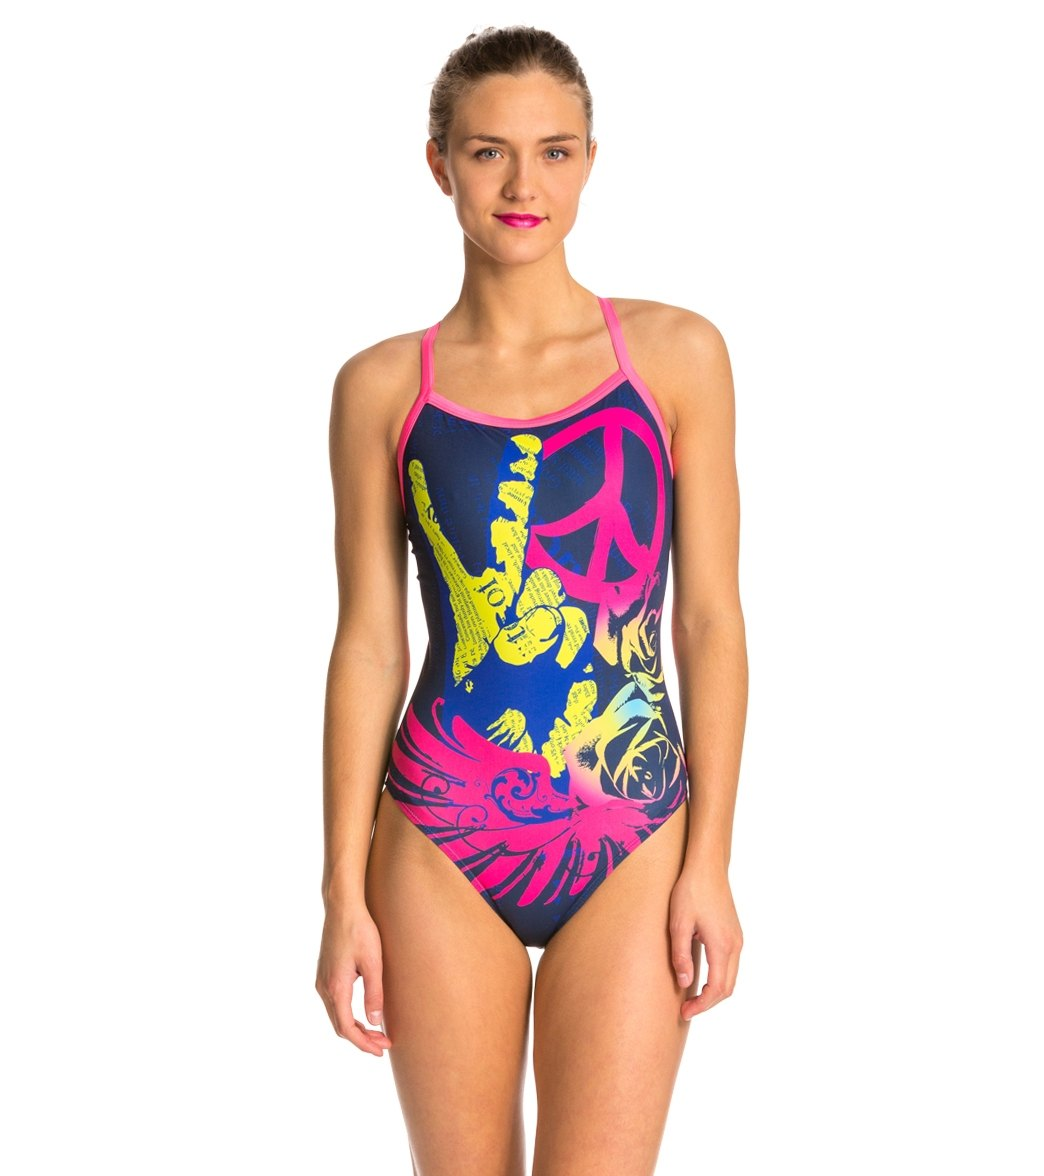 17cb09ad046 HARDCORESPORT Women's Peace X-Back One Piece Swimsuit at SwimOutlet.com -  Free Shipping